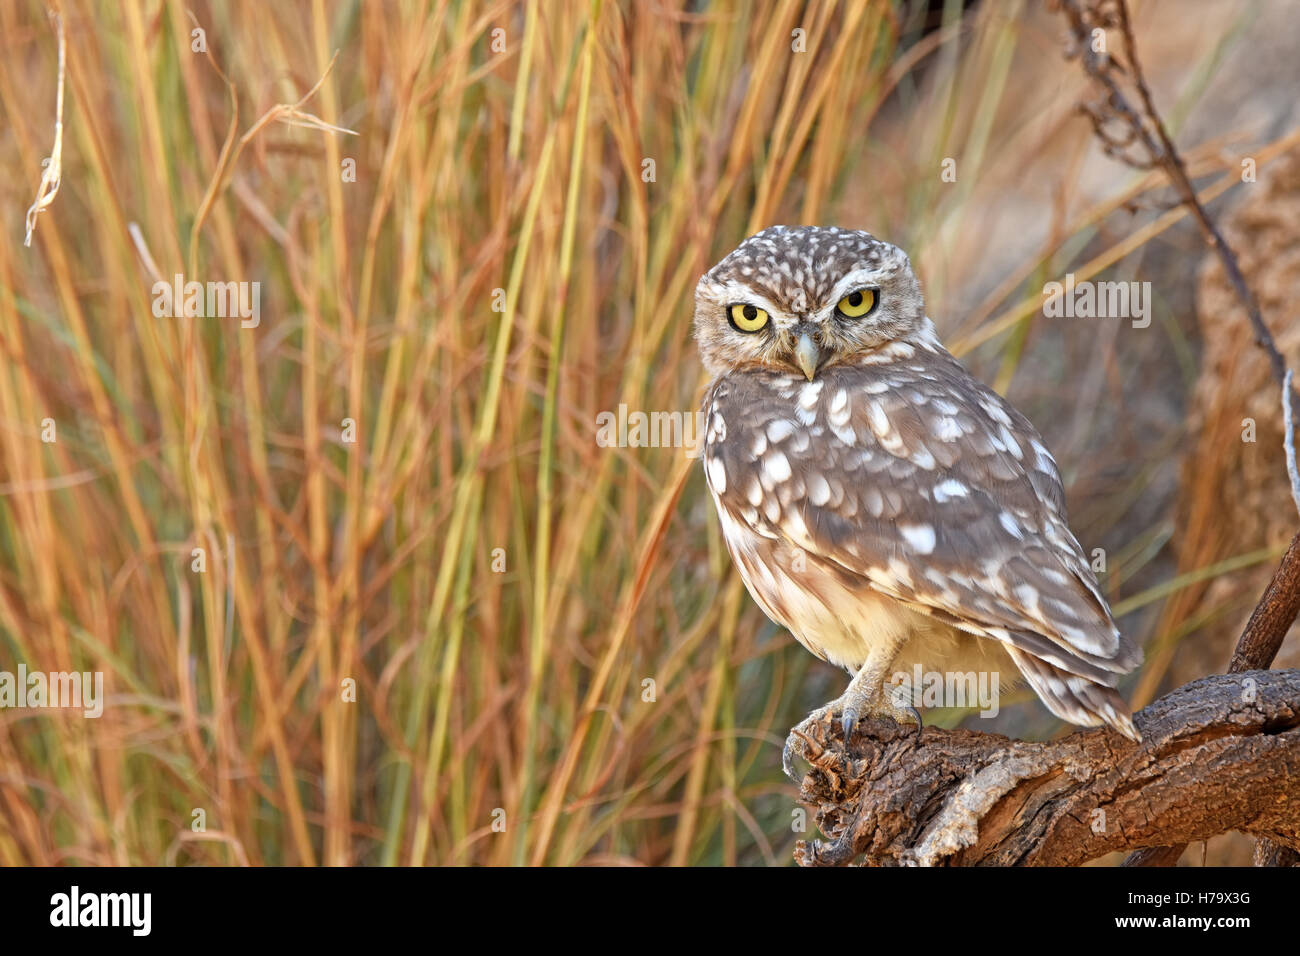 Little owl perching on rock - Stock Image